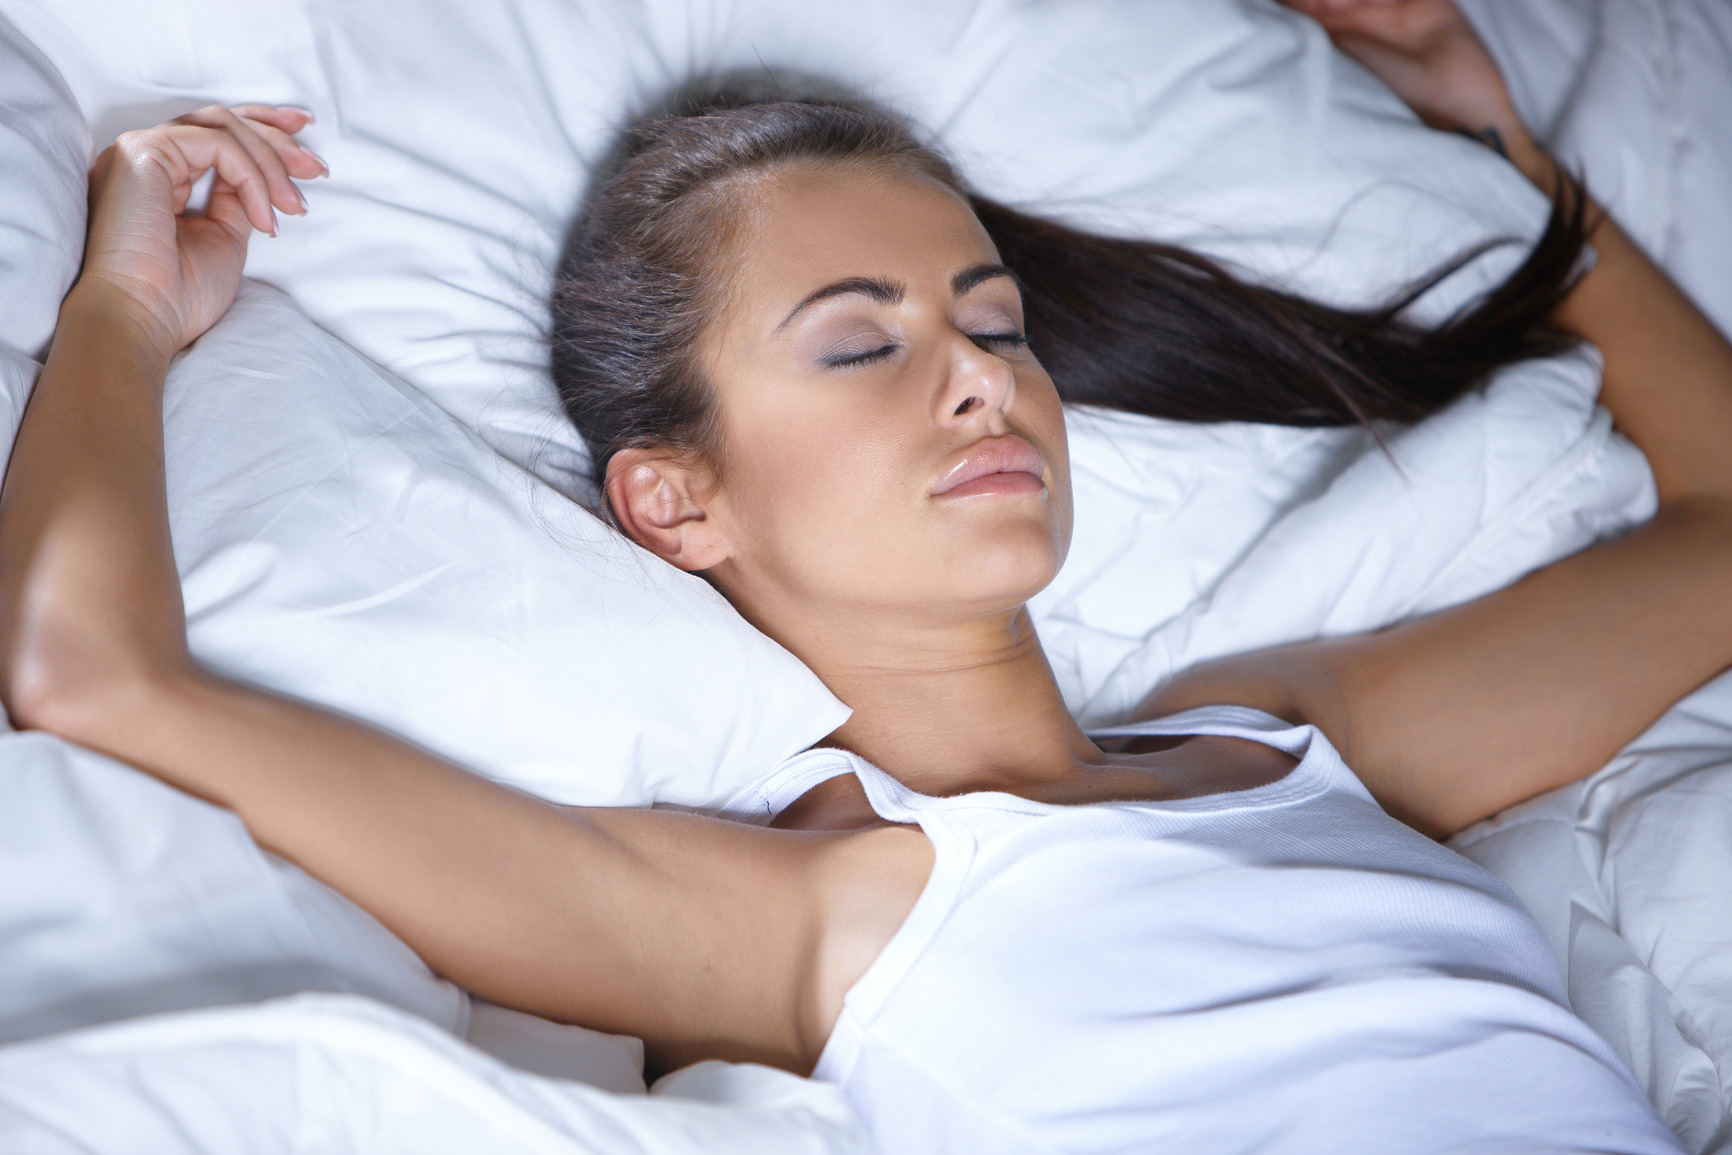 How Pillows Play a very Important Role for a Sound Sleep